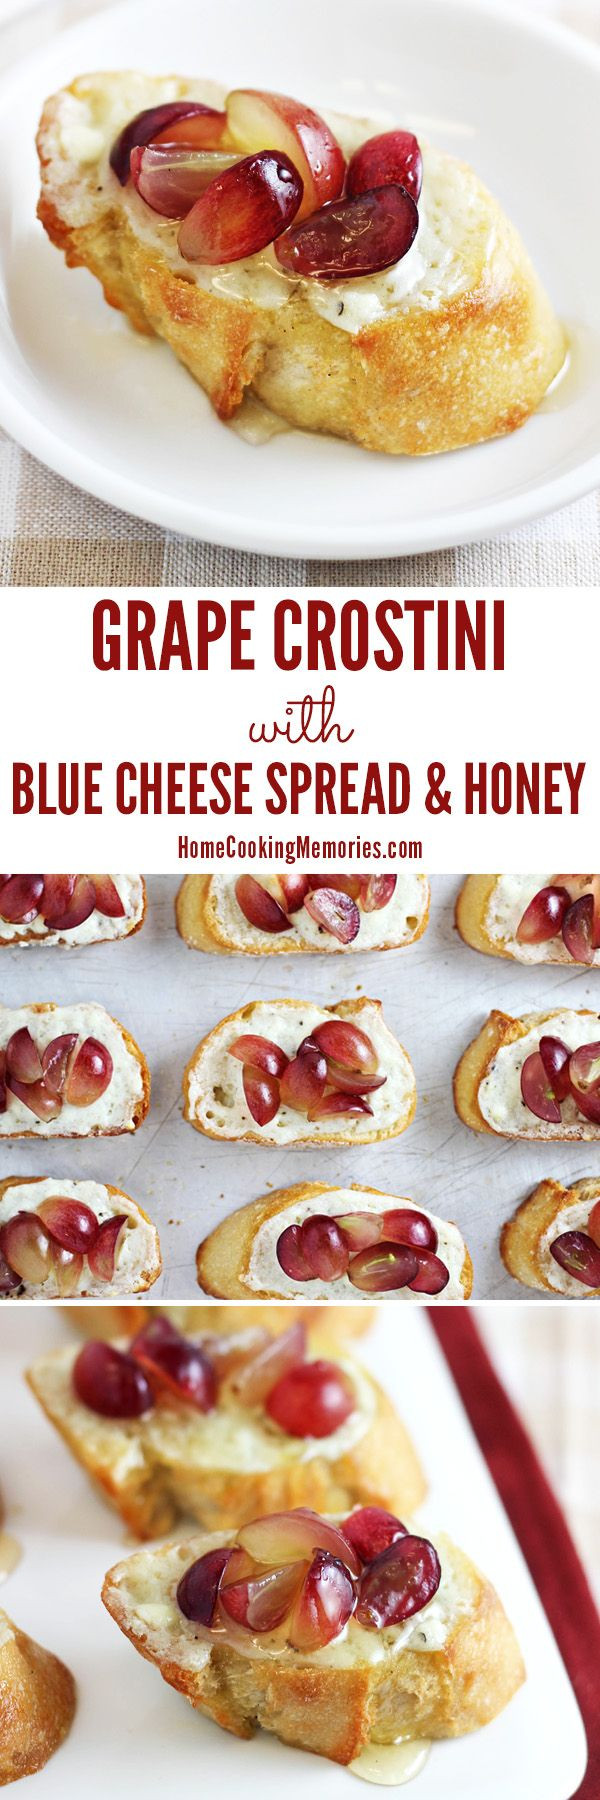 Great Appetizers For Christmas Party  17 Best ideas about Christmas Party Appetizers on